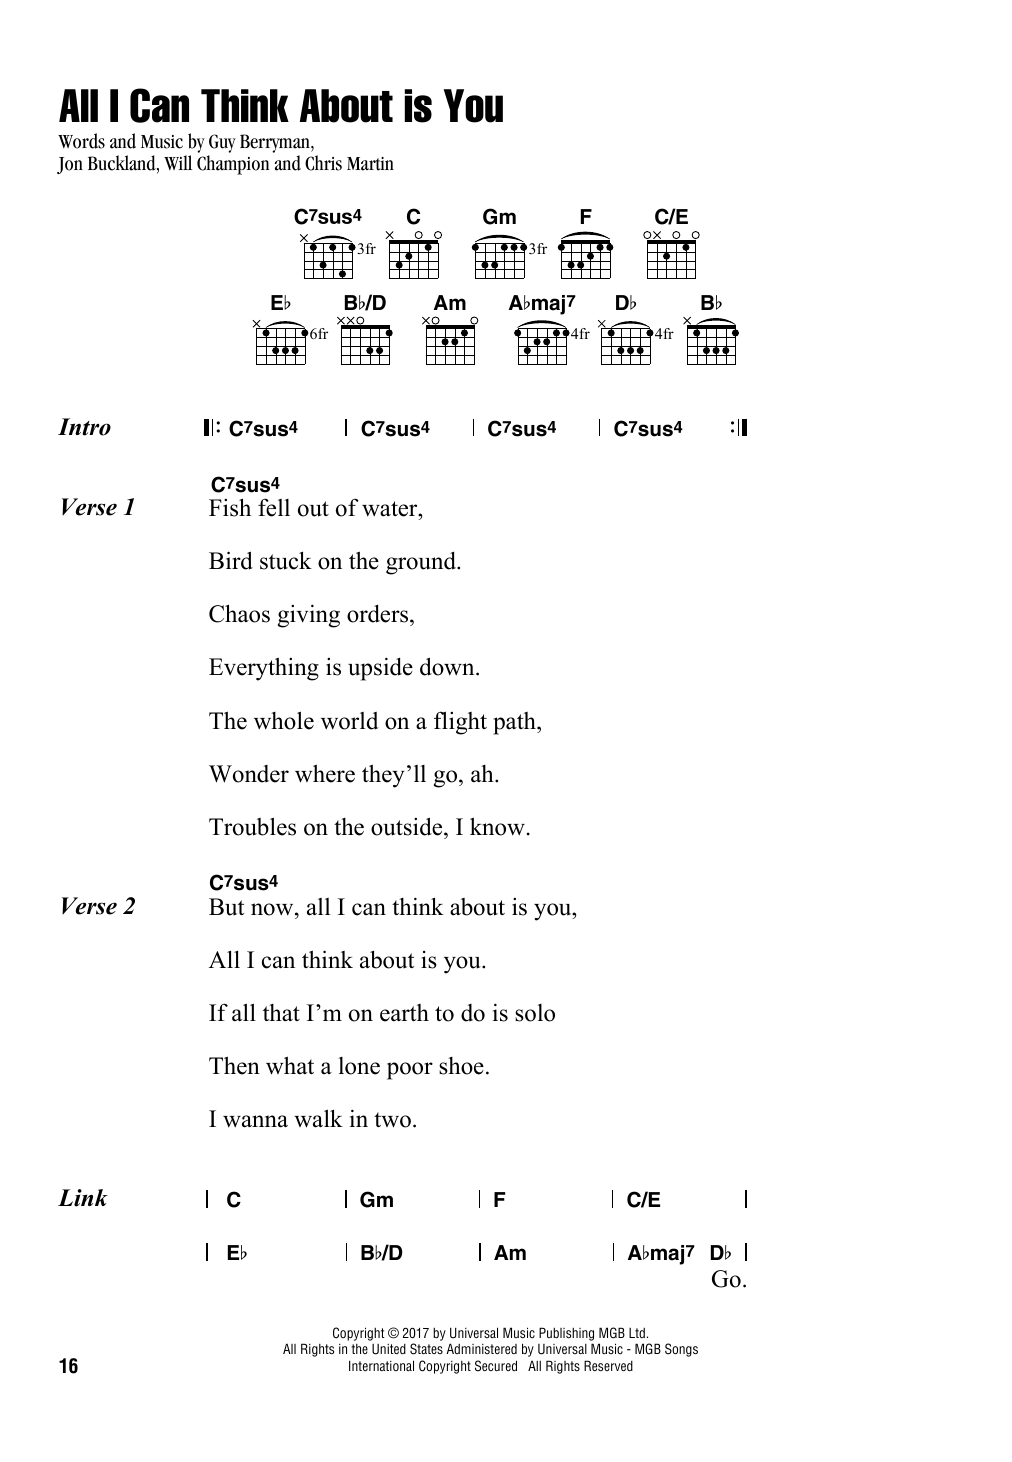 All I Can Think About Is You (Lyrics & Chords)